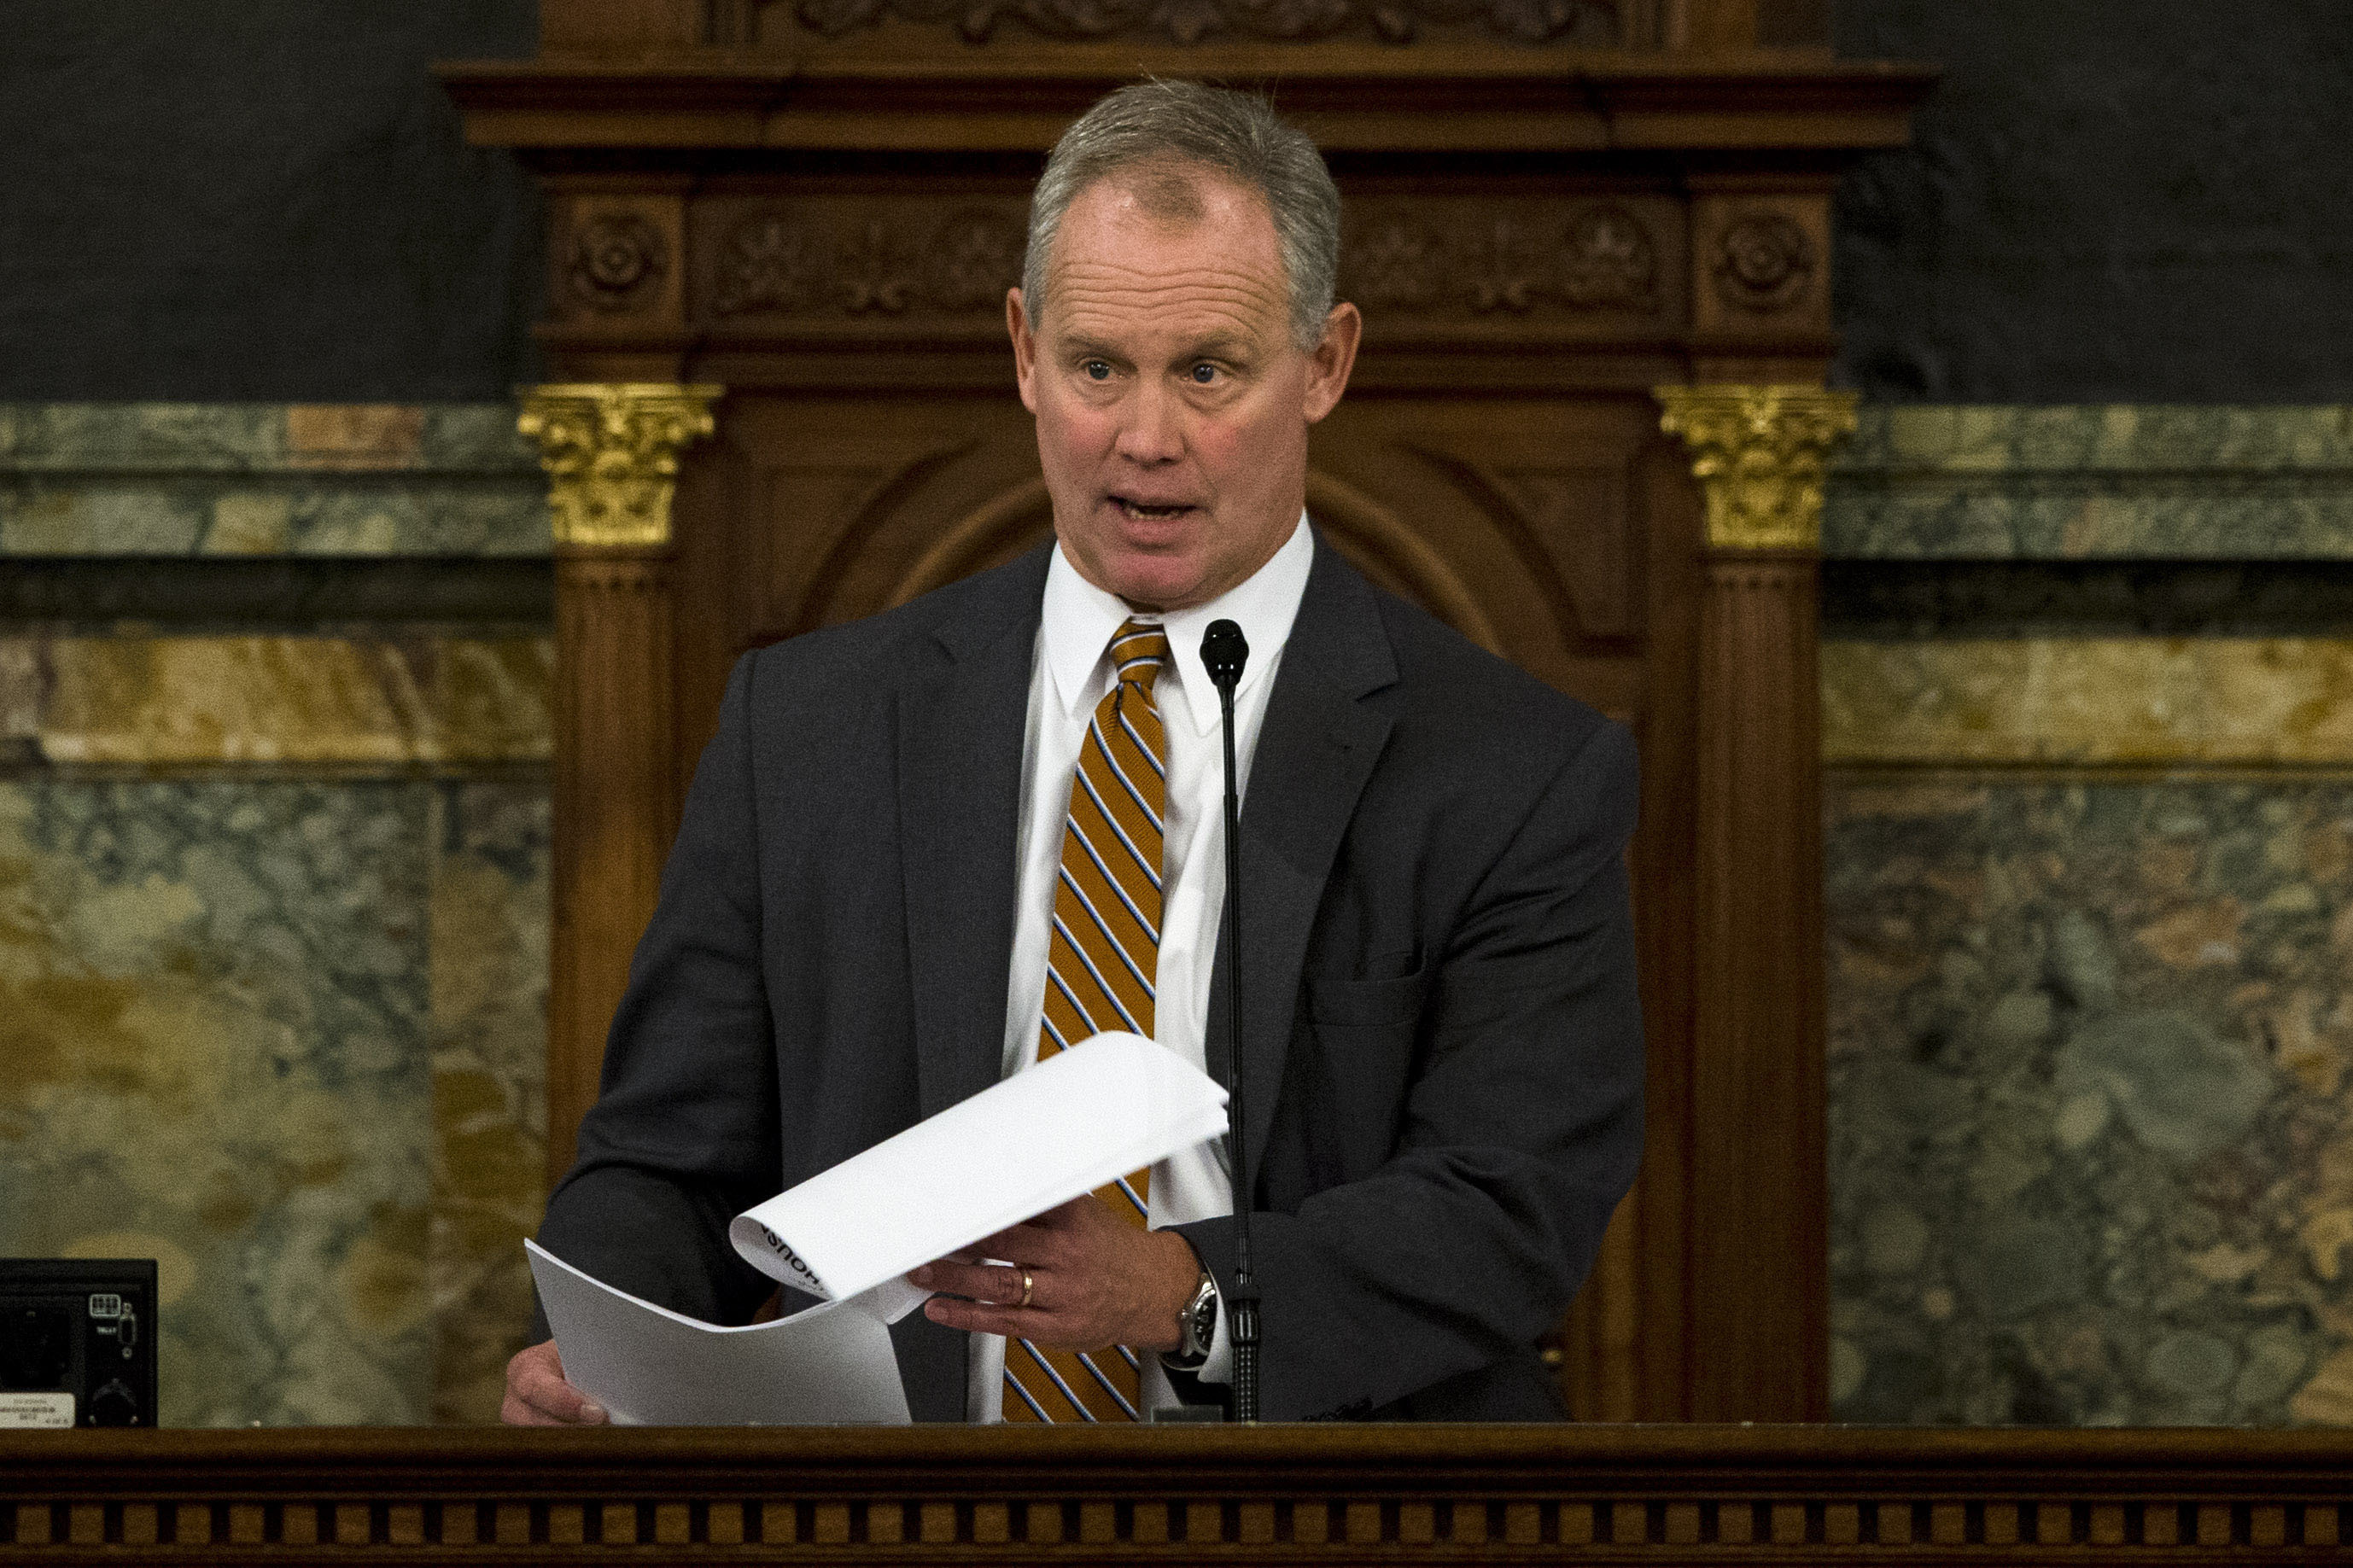 Speaker of the Pennsylvania House of Representatives, Rep. Mike Turzai, R-Allegheny, speaks in December at the state Capitol in Harrisburg.